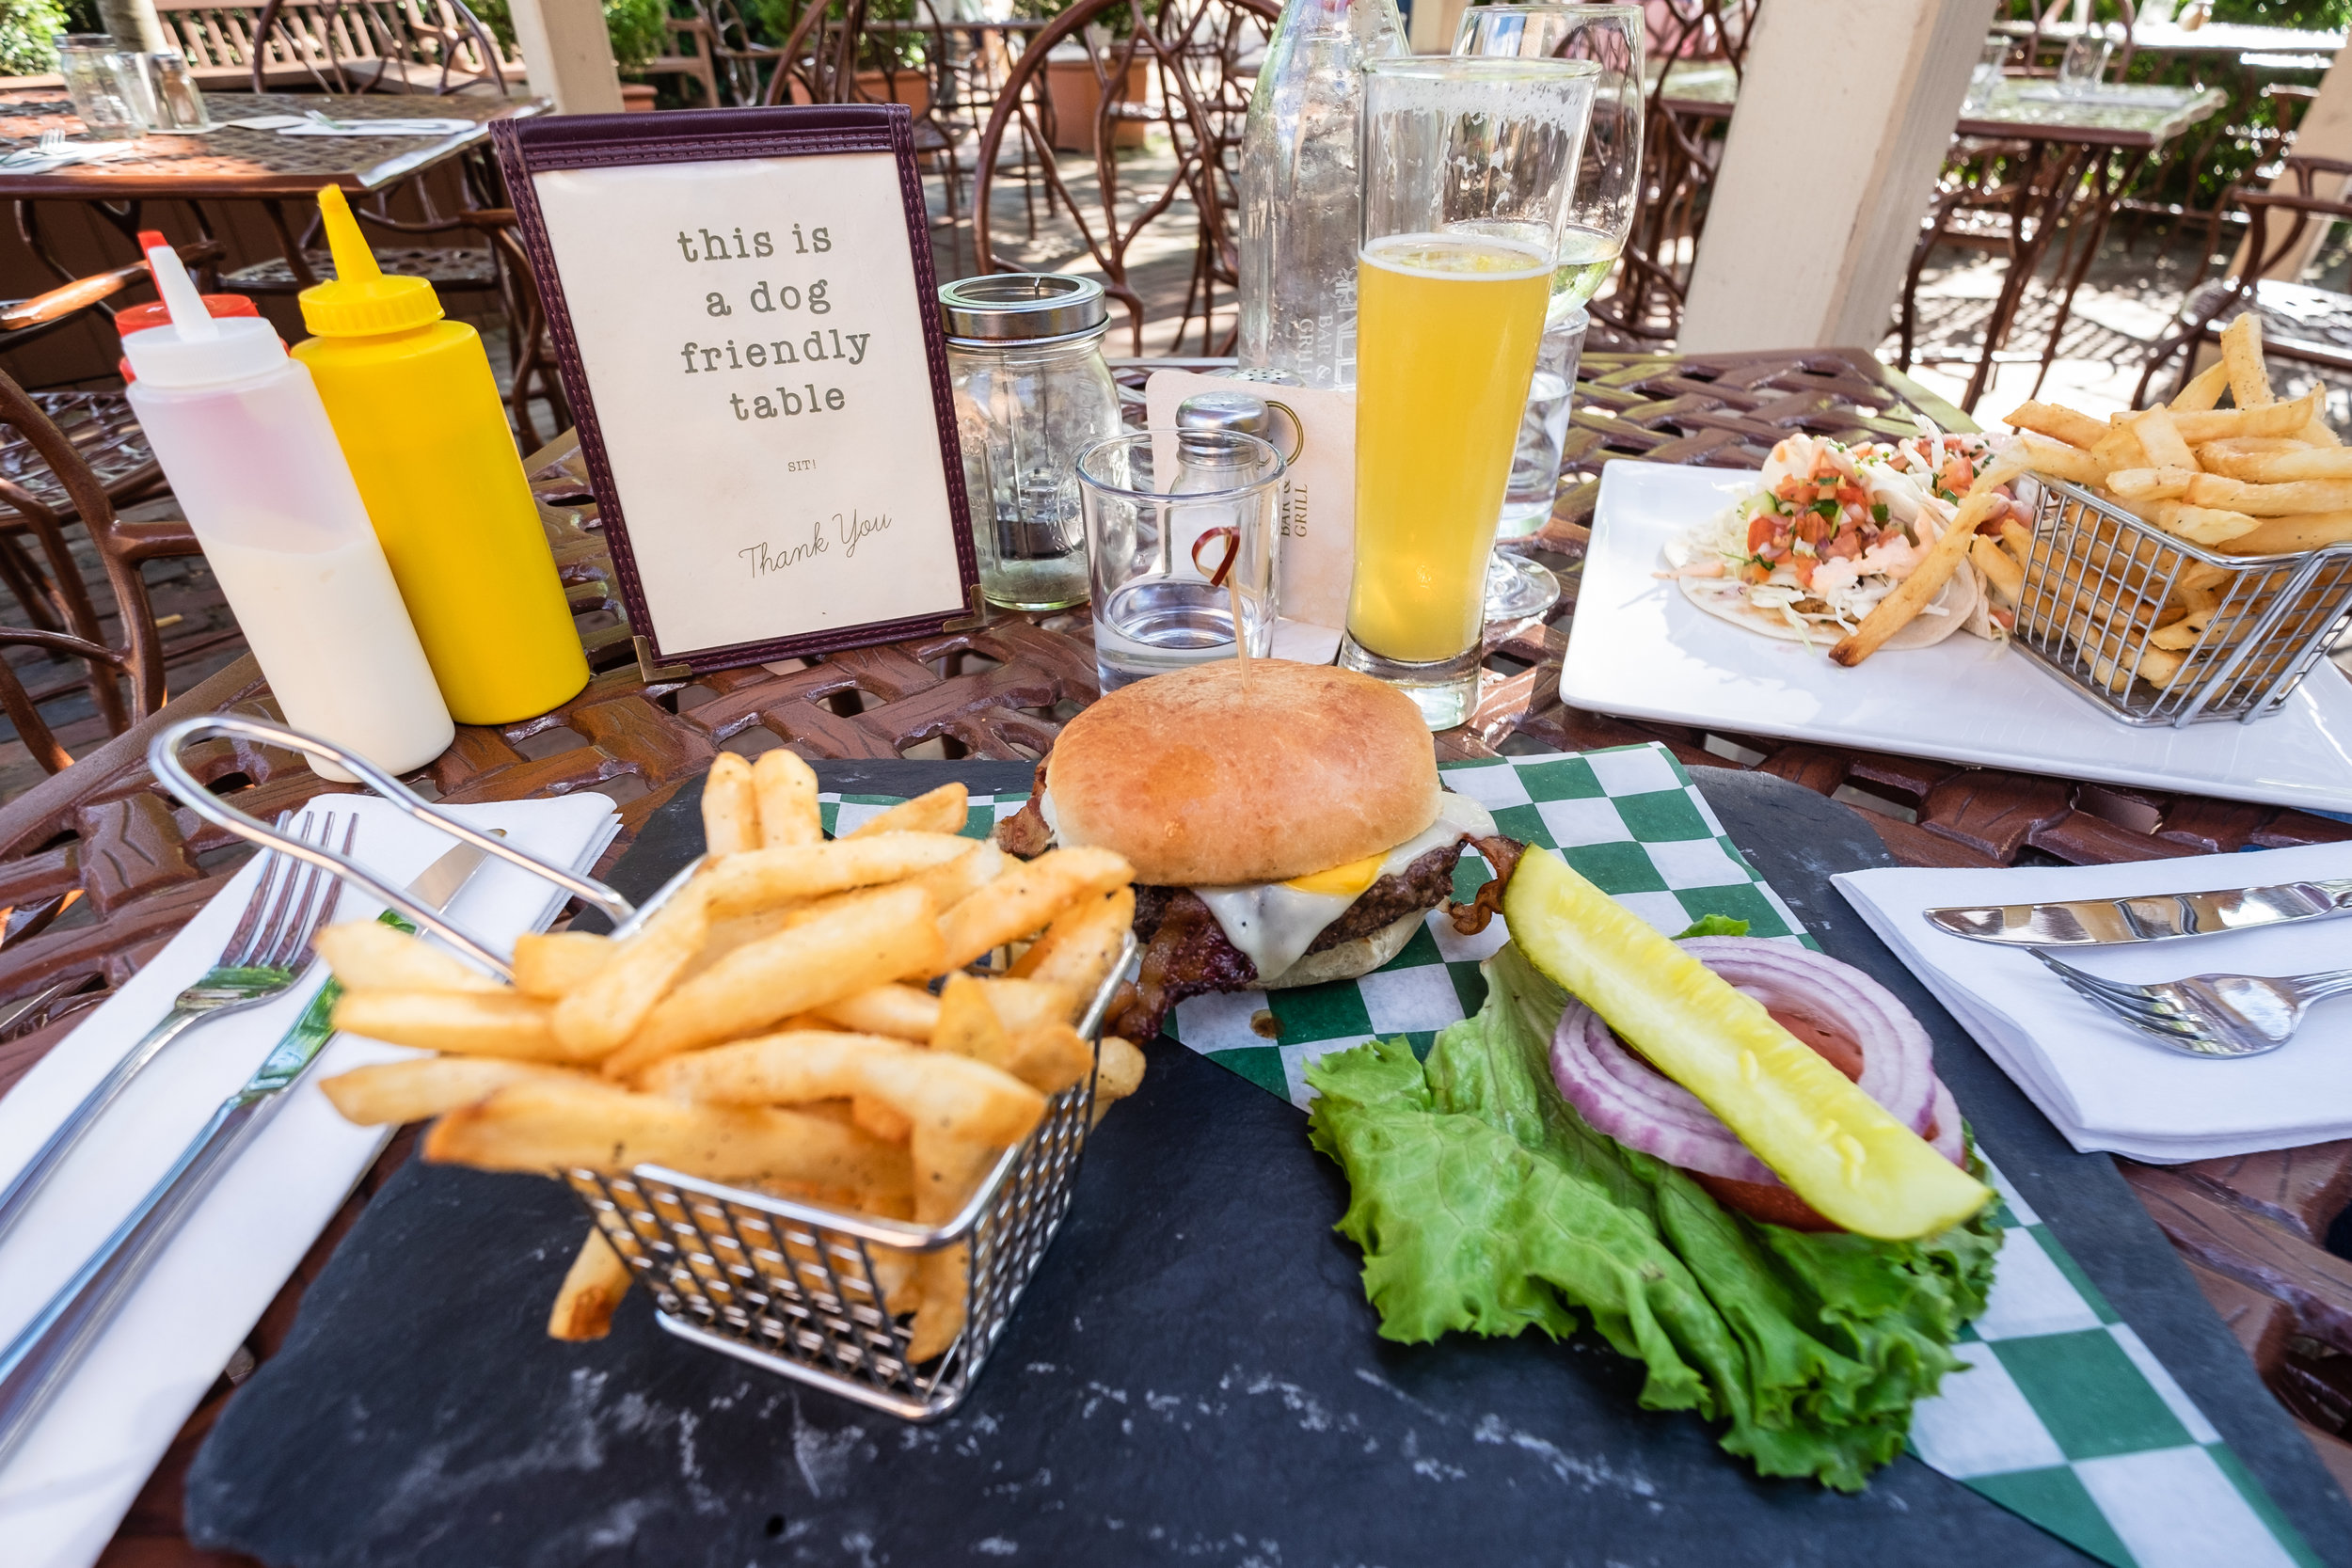 Yummy lunch at The Trellis Bar and Grill!